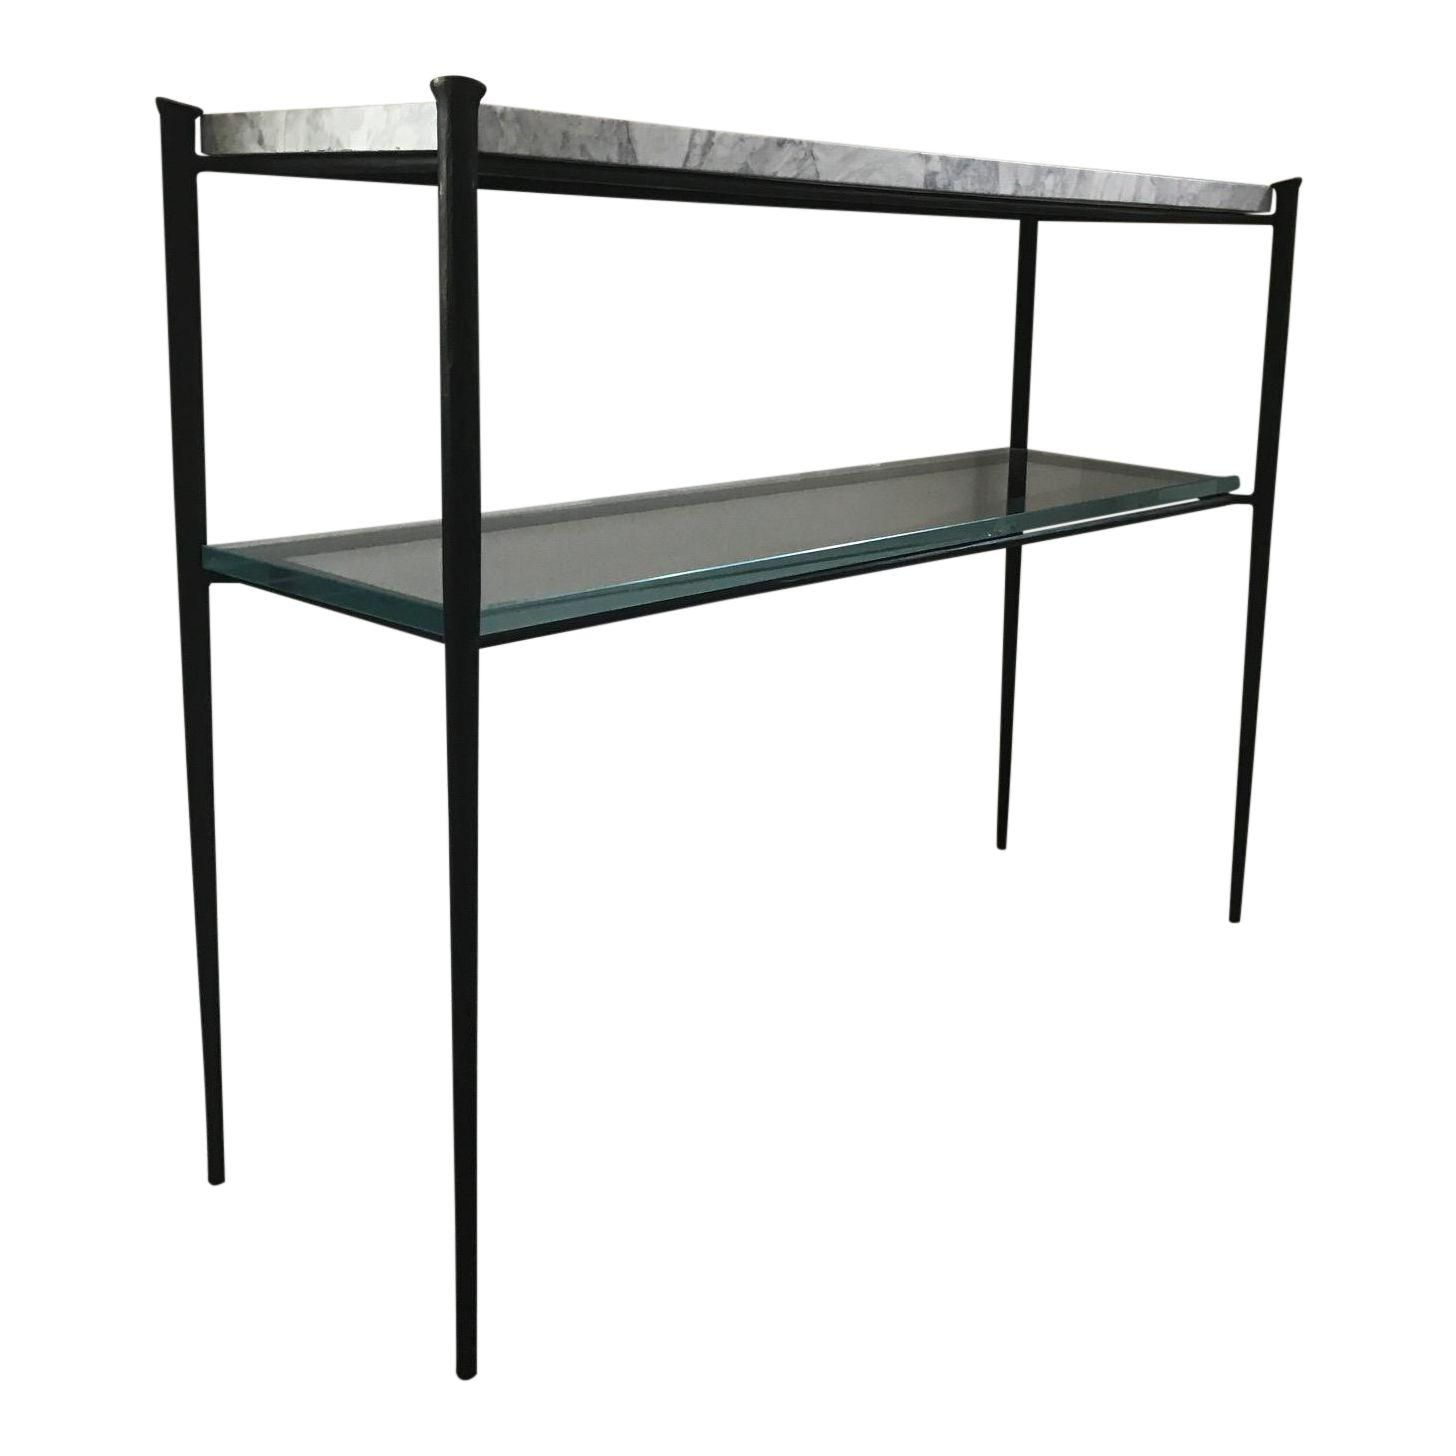 Modern Minimalist Console Table | Modern Minimalist, Console Tables With Regard To Parsons White Marble Top & Dark Steel Base 48X16 Console Tables (Gallery 20 of 20)